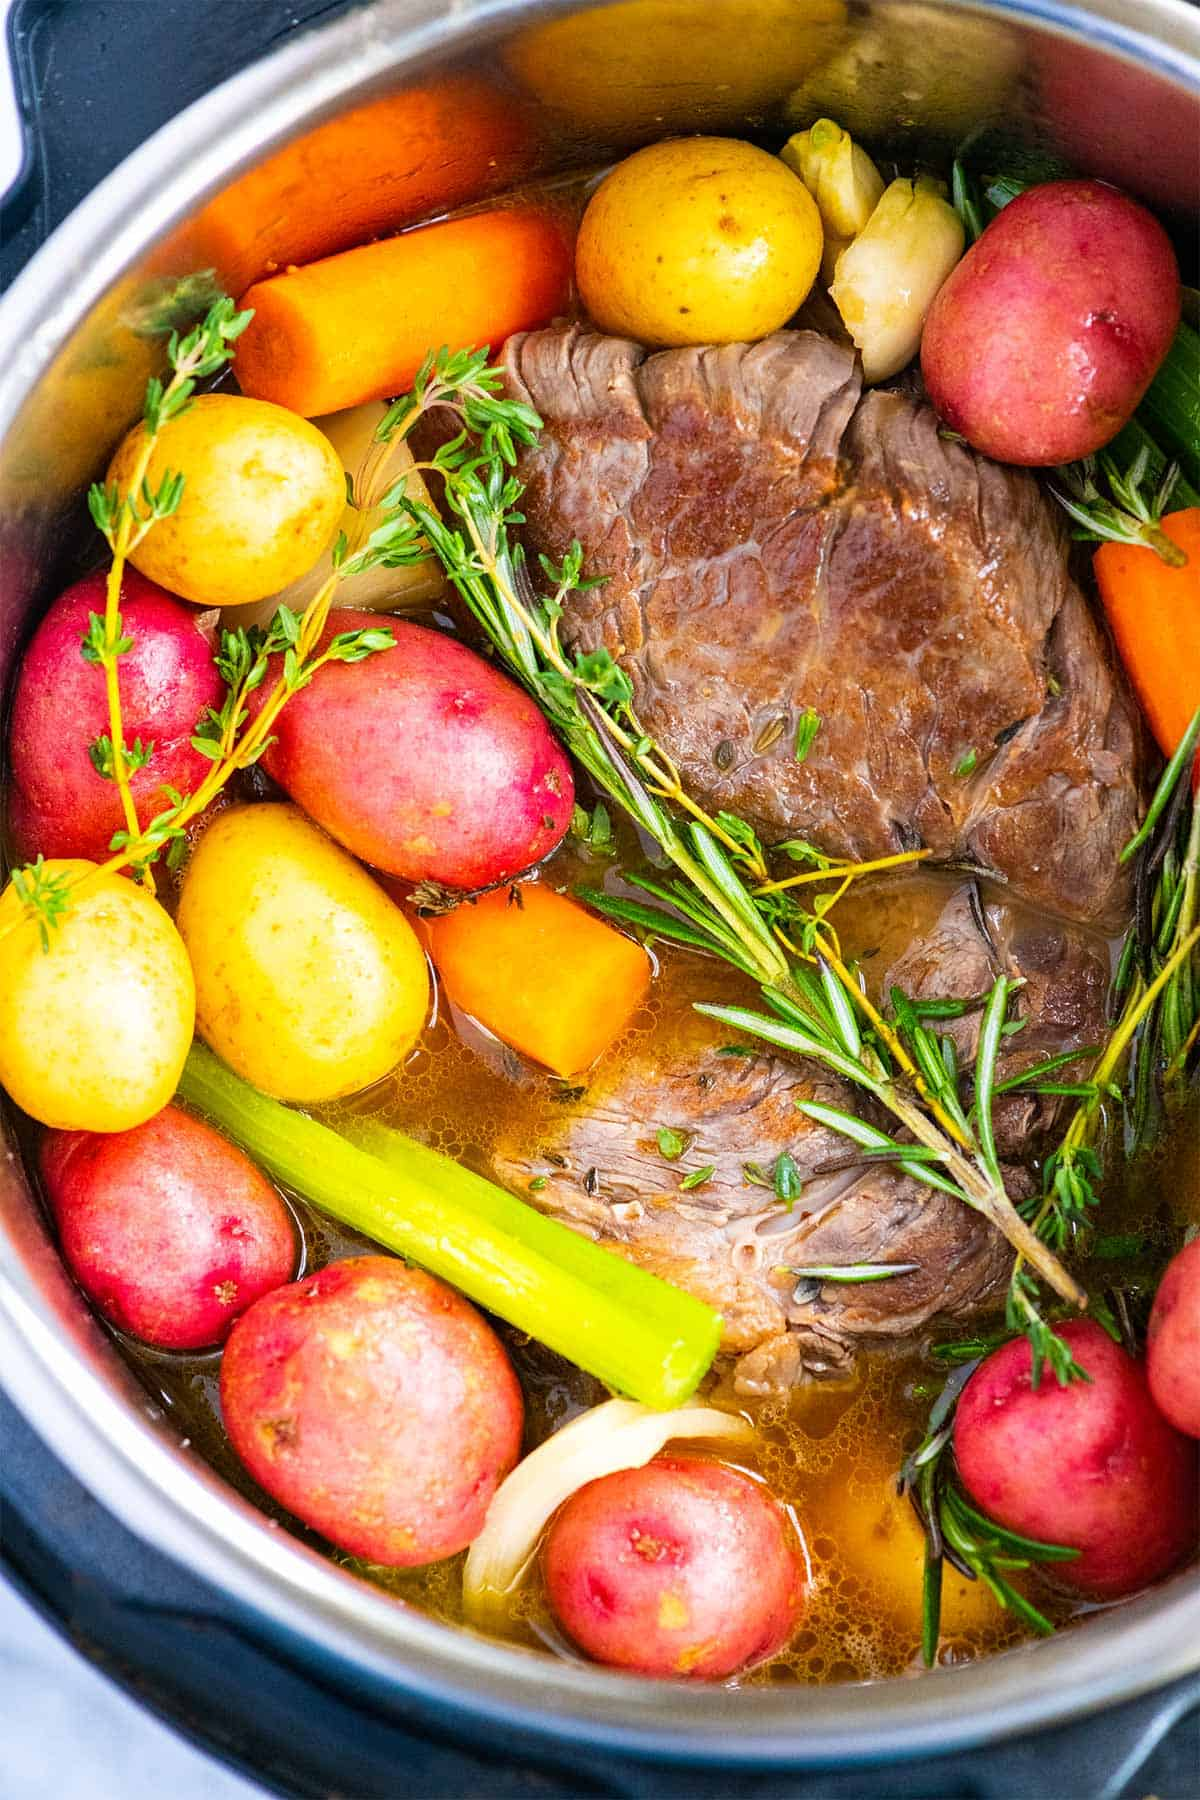 Instant Pot Pot Roast with potatoes, carrots, and herbs.